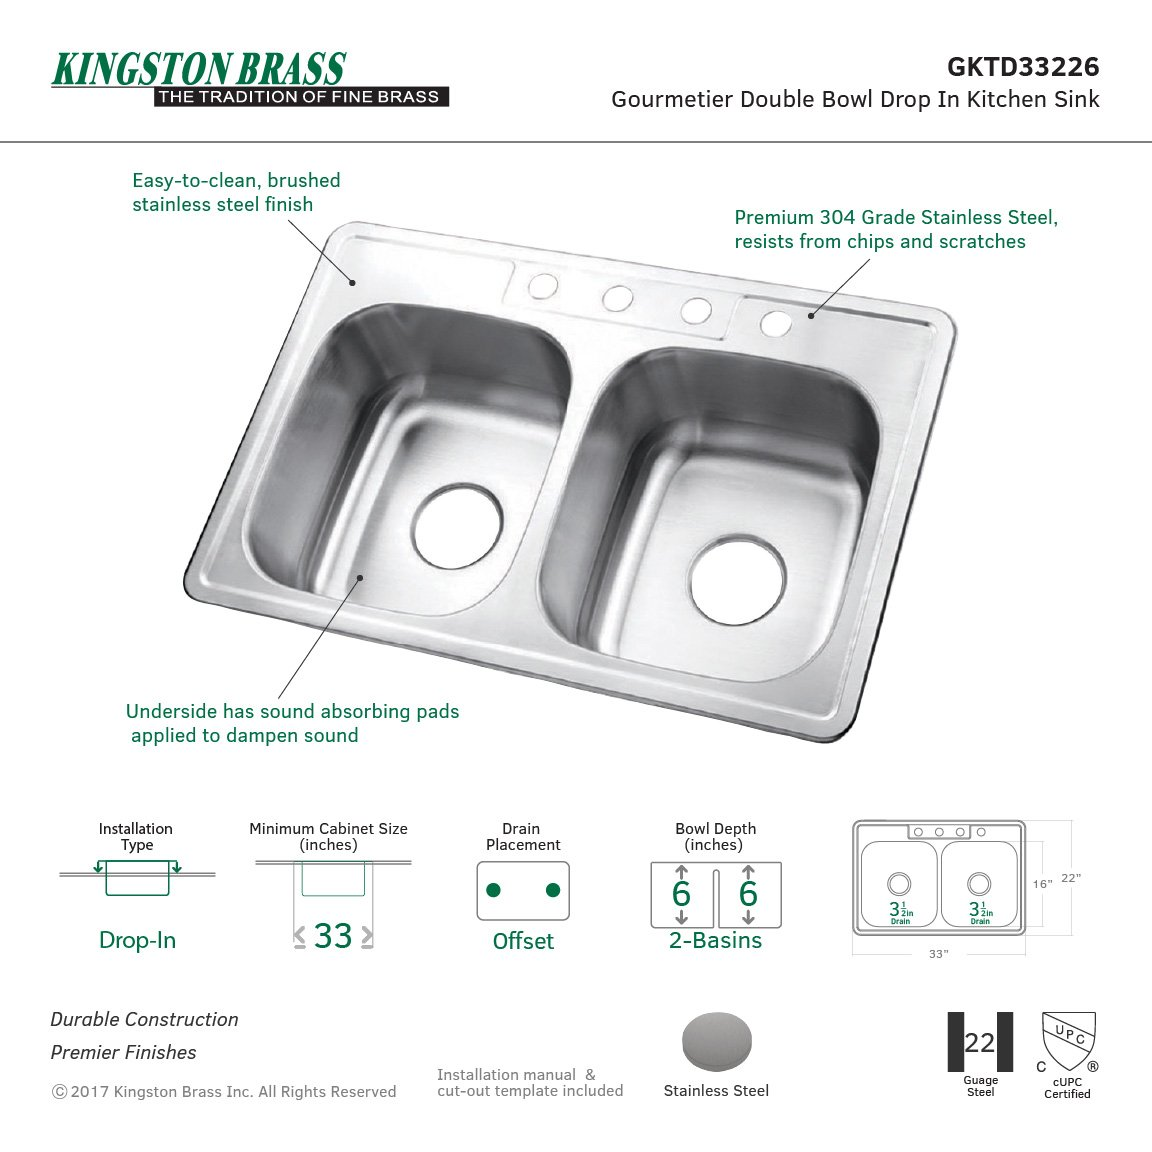 Kingston Brass Gourmetier GKTD33226  Studio Self-Rimming Double Bowl Kitchen Sink, 33-Inch L × 22-Inch W × 6-Inch H, Brushed Stainless Steel